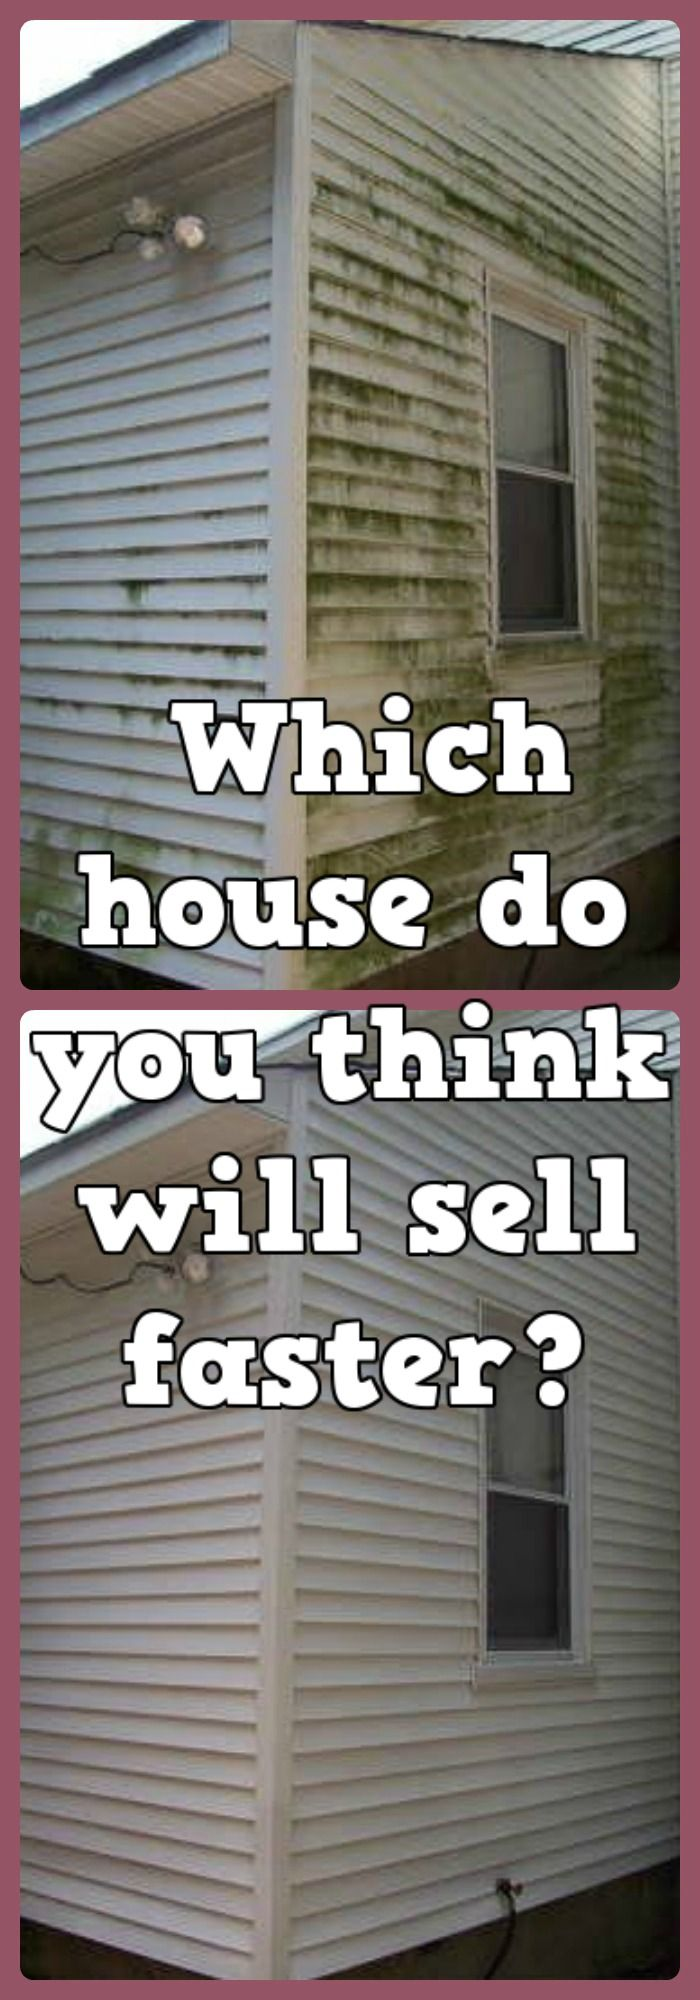 9 best Tampa Exterior House Washing images on Pinterest   Cleaning ...